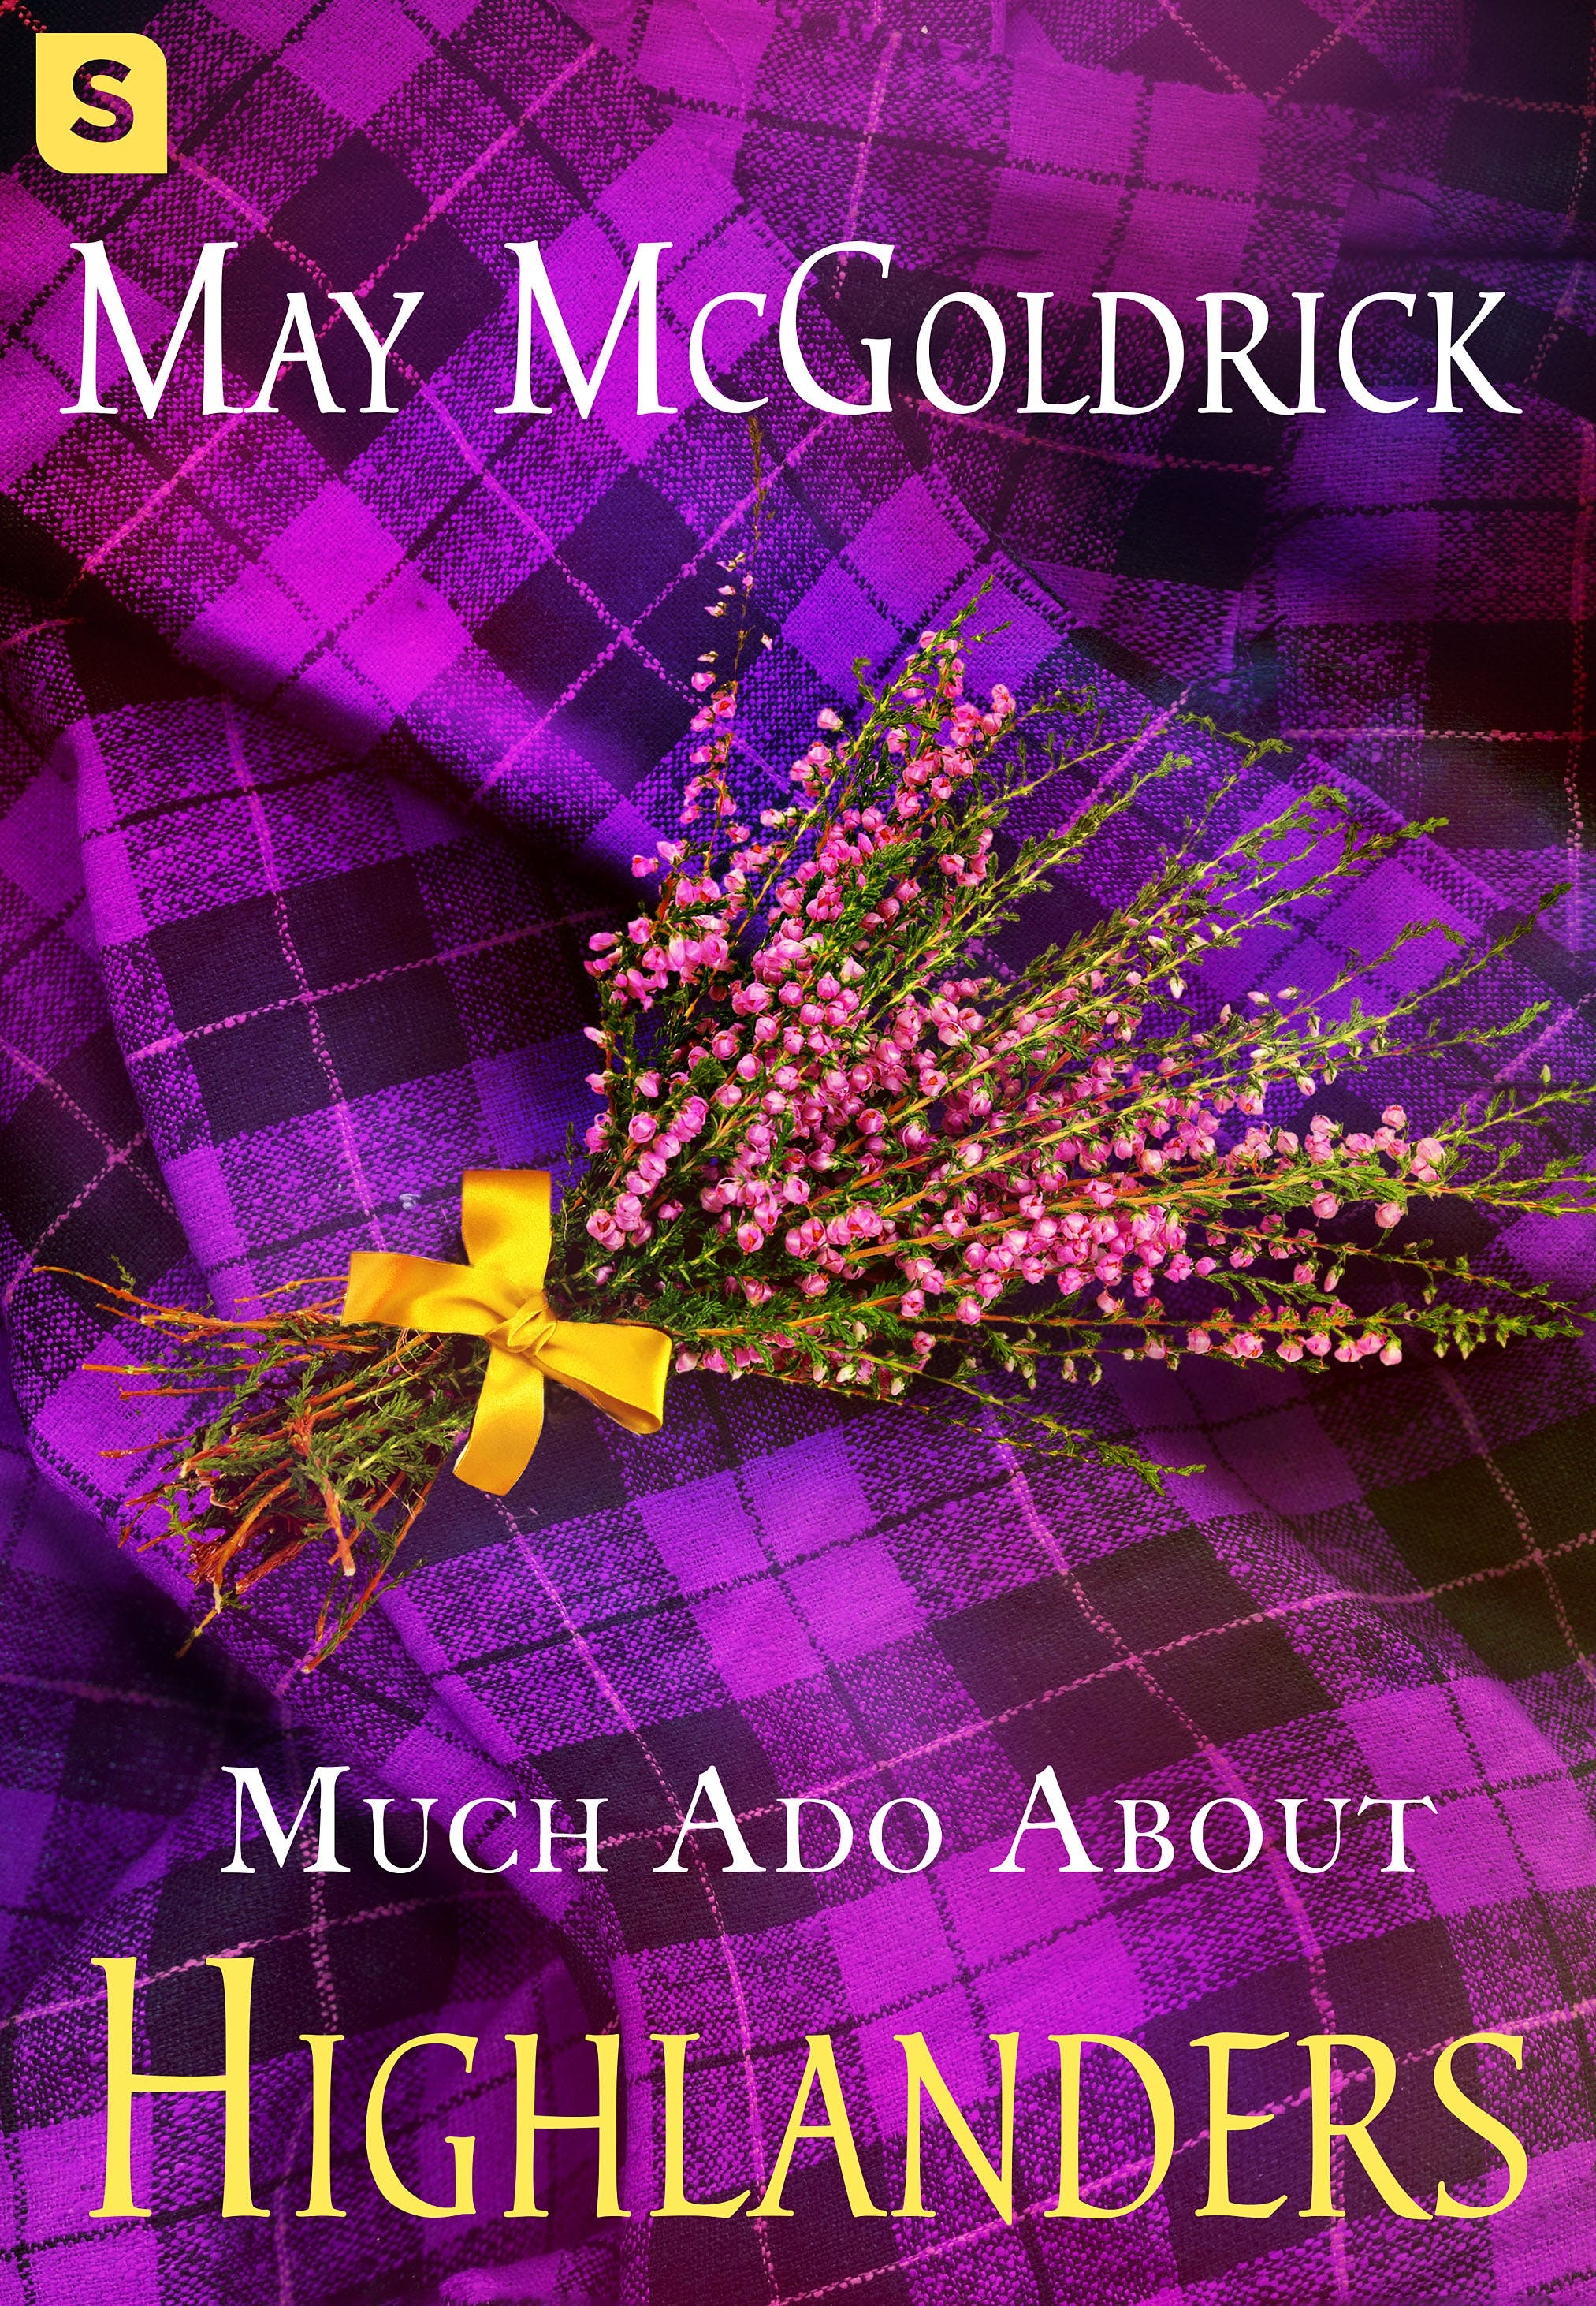 Image of Much Ado About Highlanders